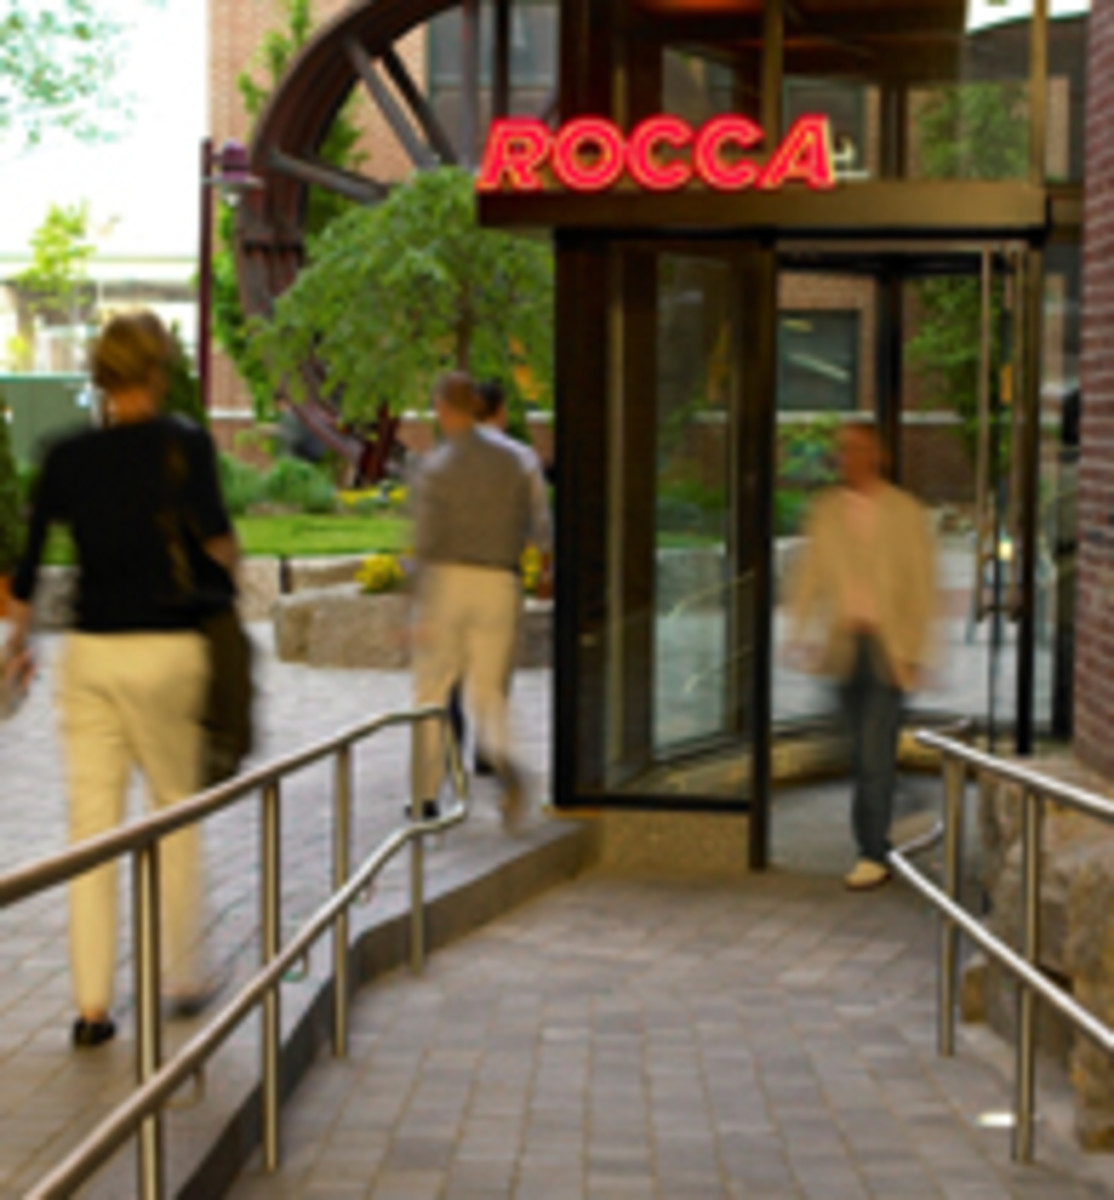 Outside Rocca in Boston, MA. where Tiffany is cooking away in the kitchen.